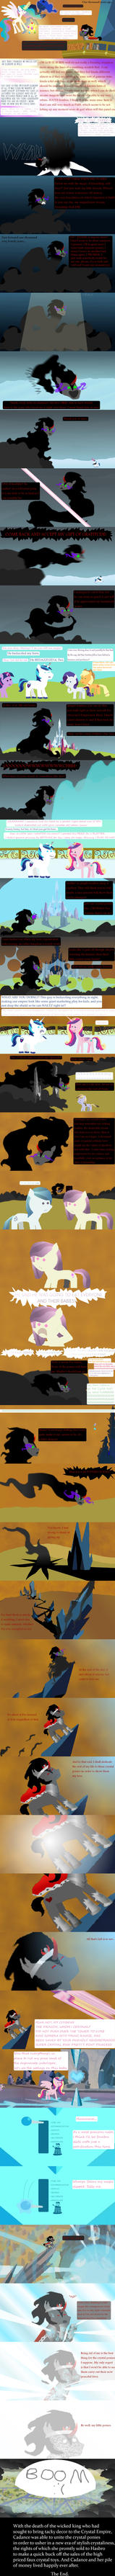 The Unicorn Whose Heart Was Bright as Day by unassuminguser